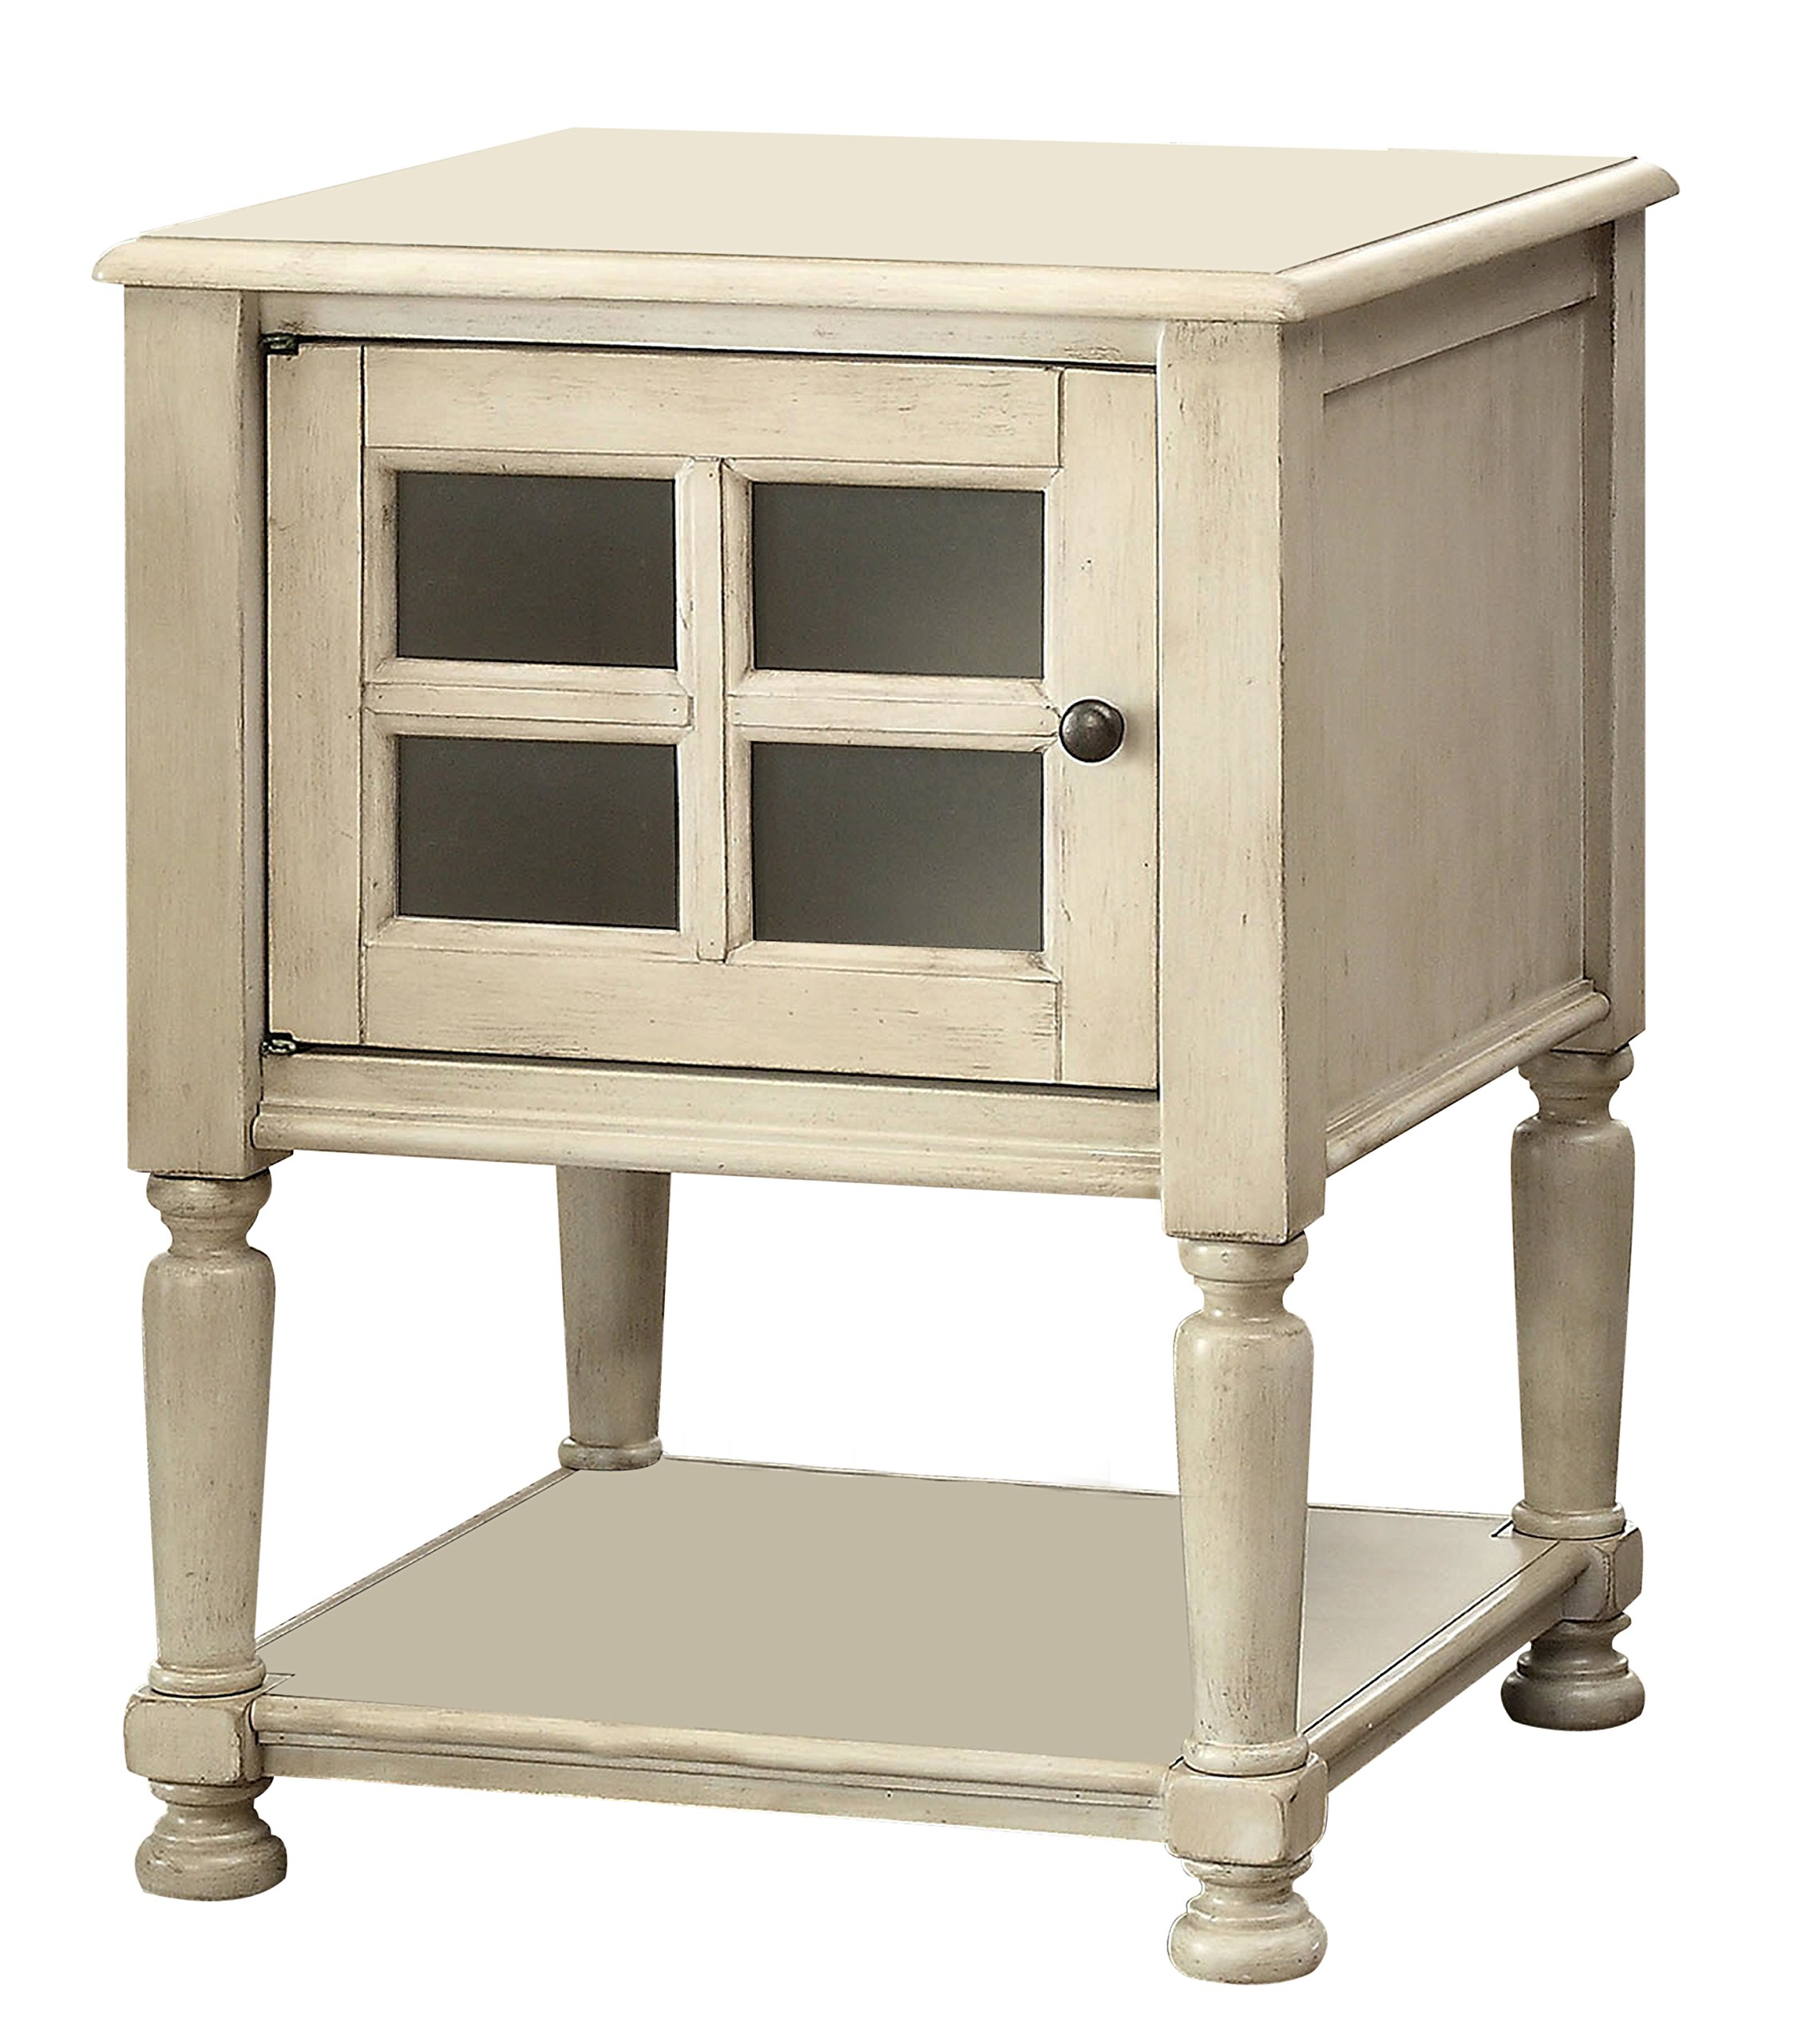 Furniture of America Bertalli Single Cabinet Side Table Transitional Style - Antique White